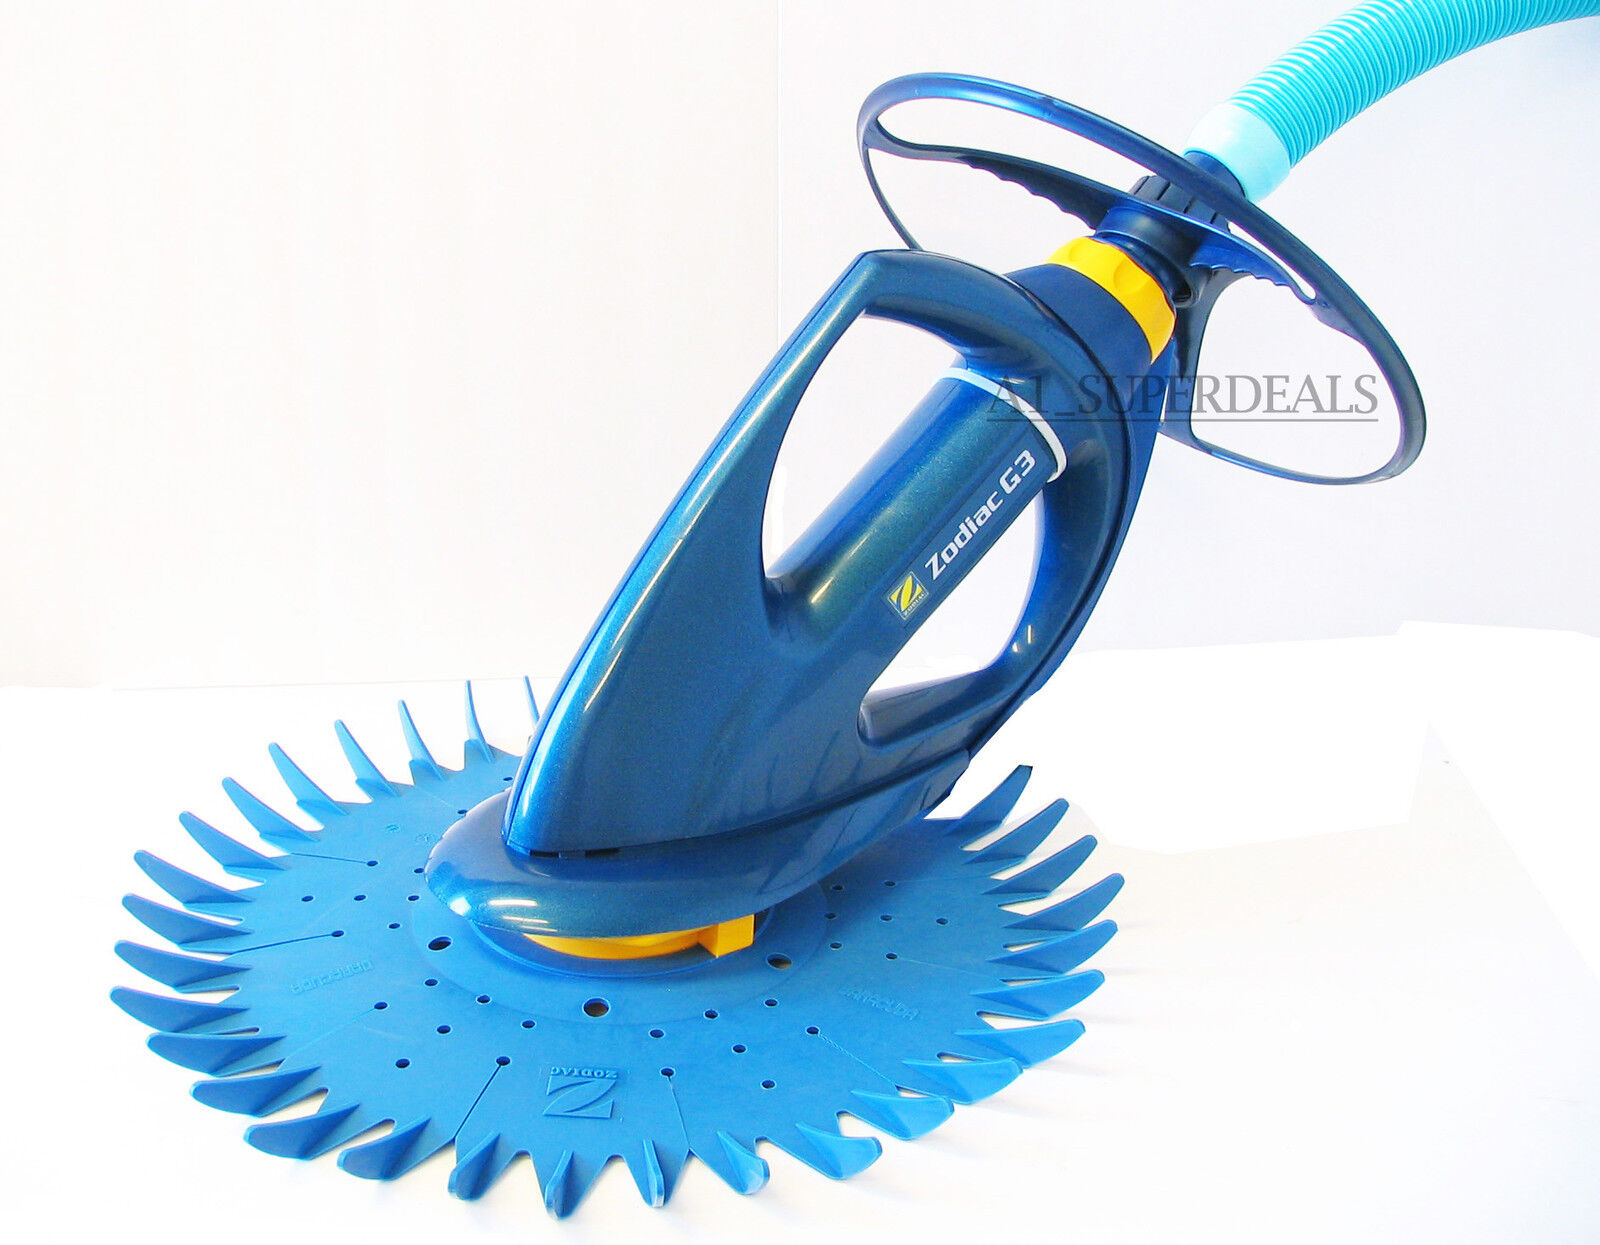 Zodiac G3 Pool Cleaner Bing Images